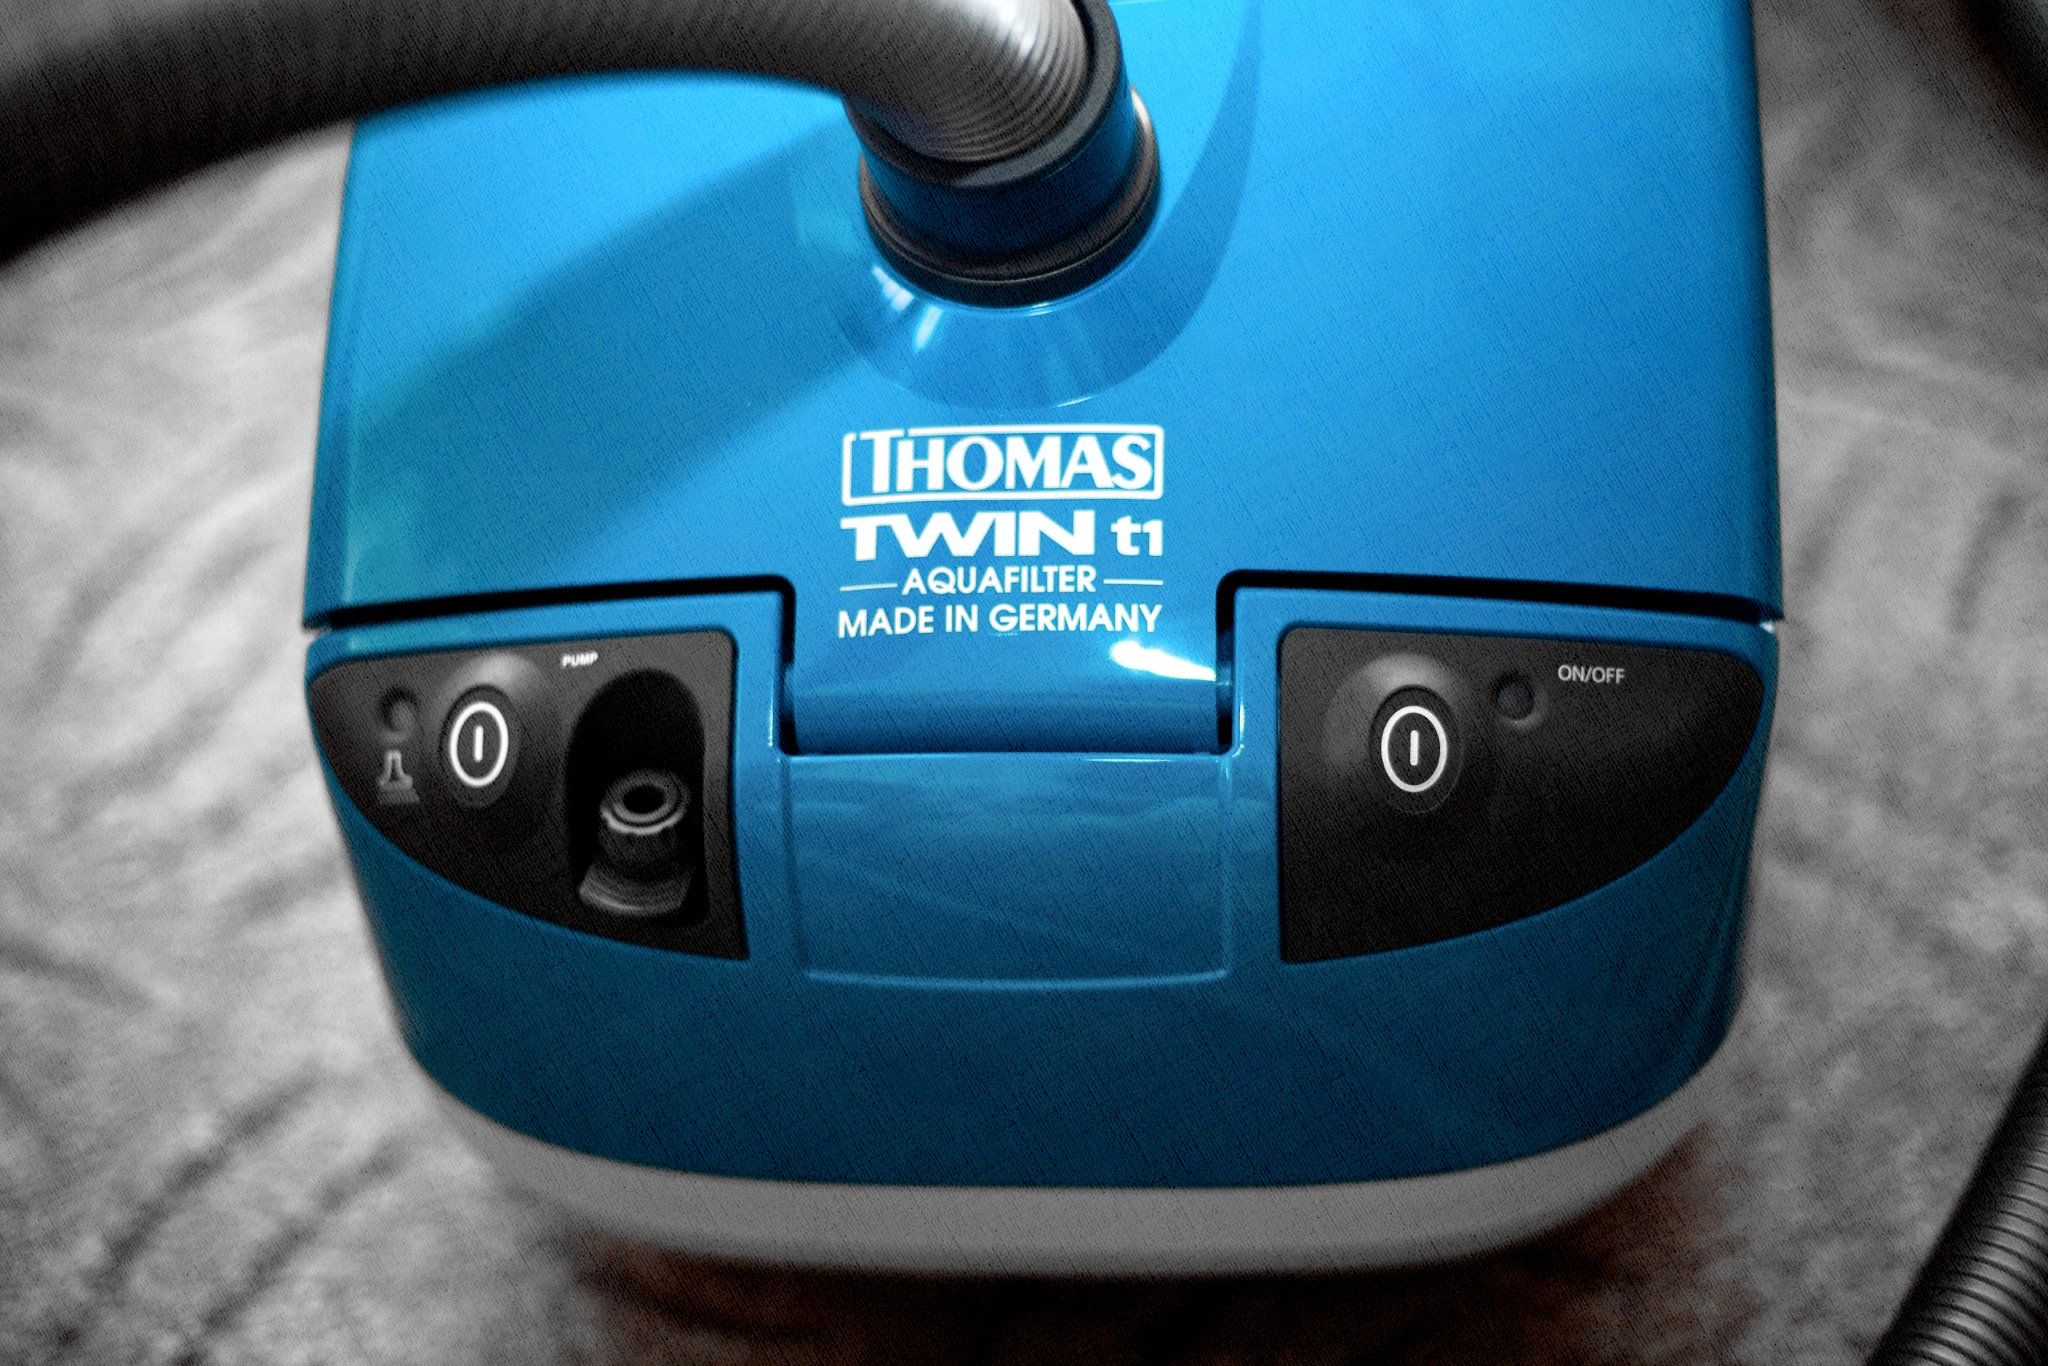 Thomas TWIN T1 Aquafilter